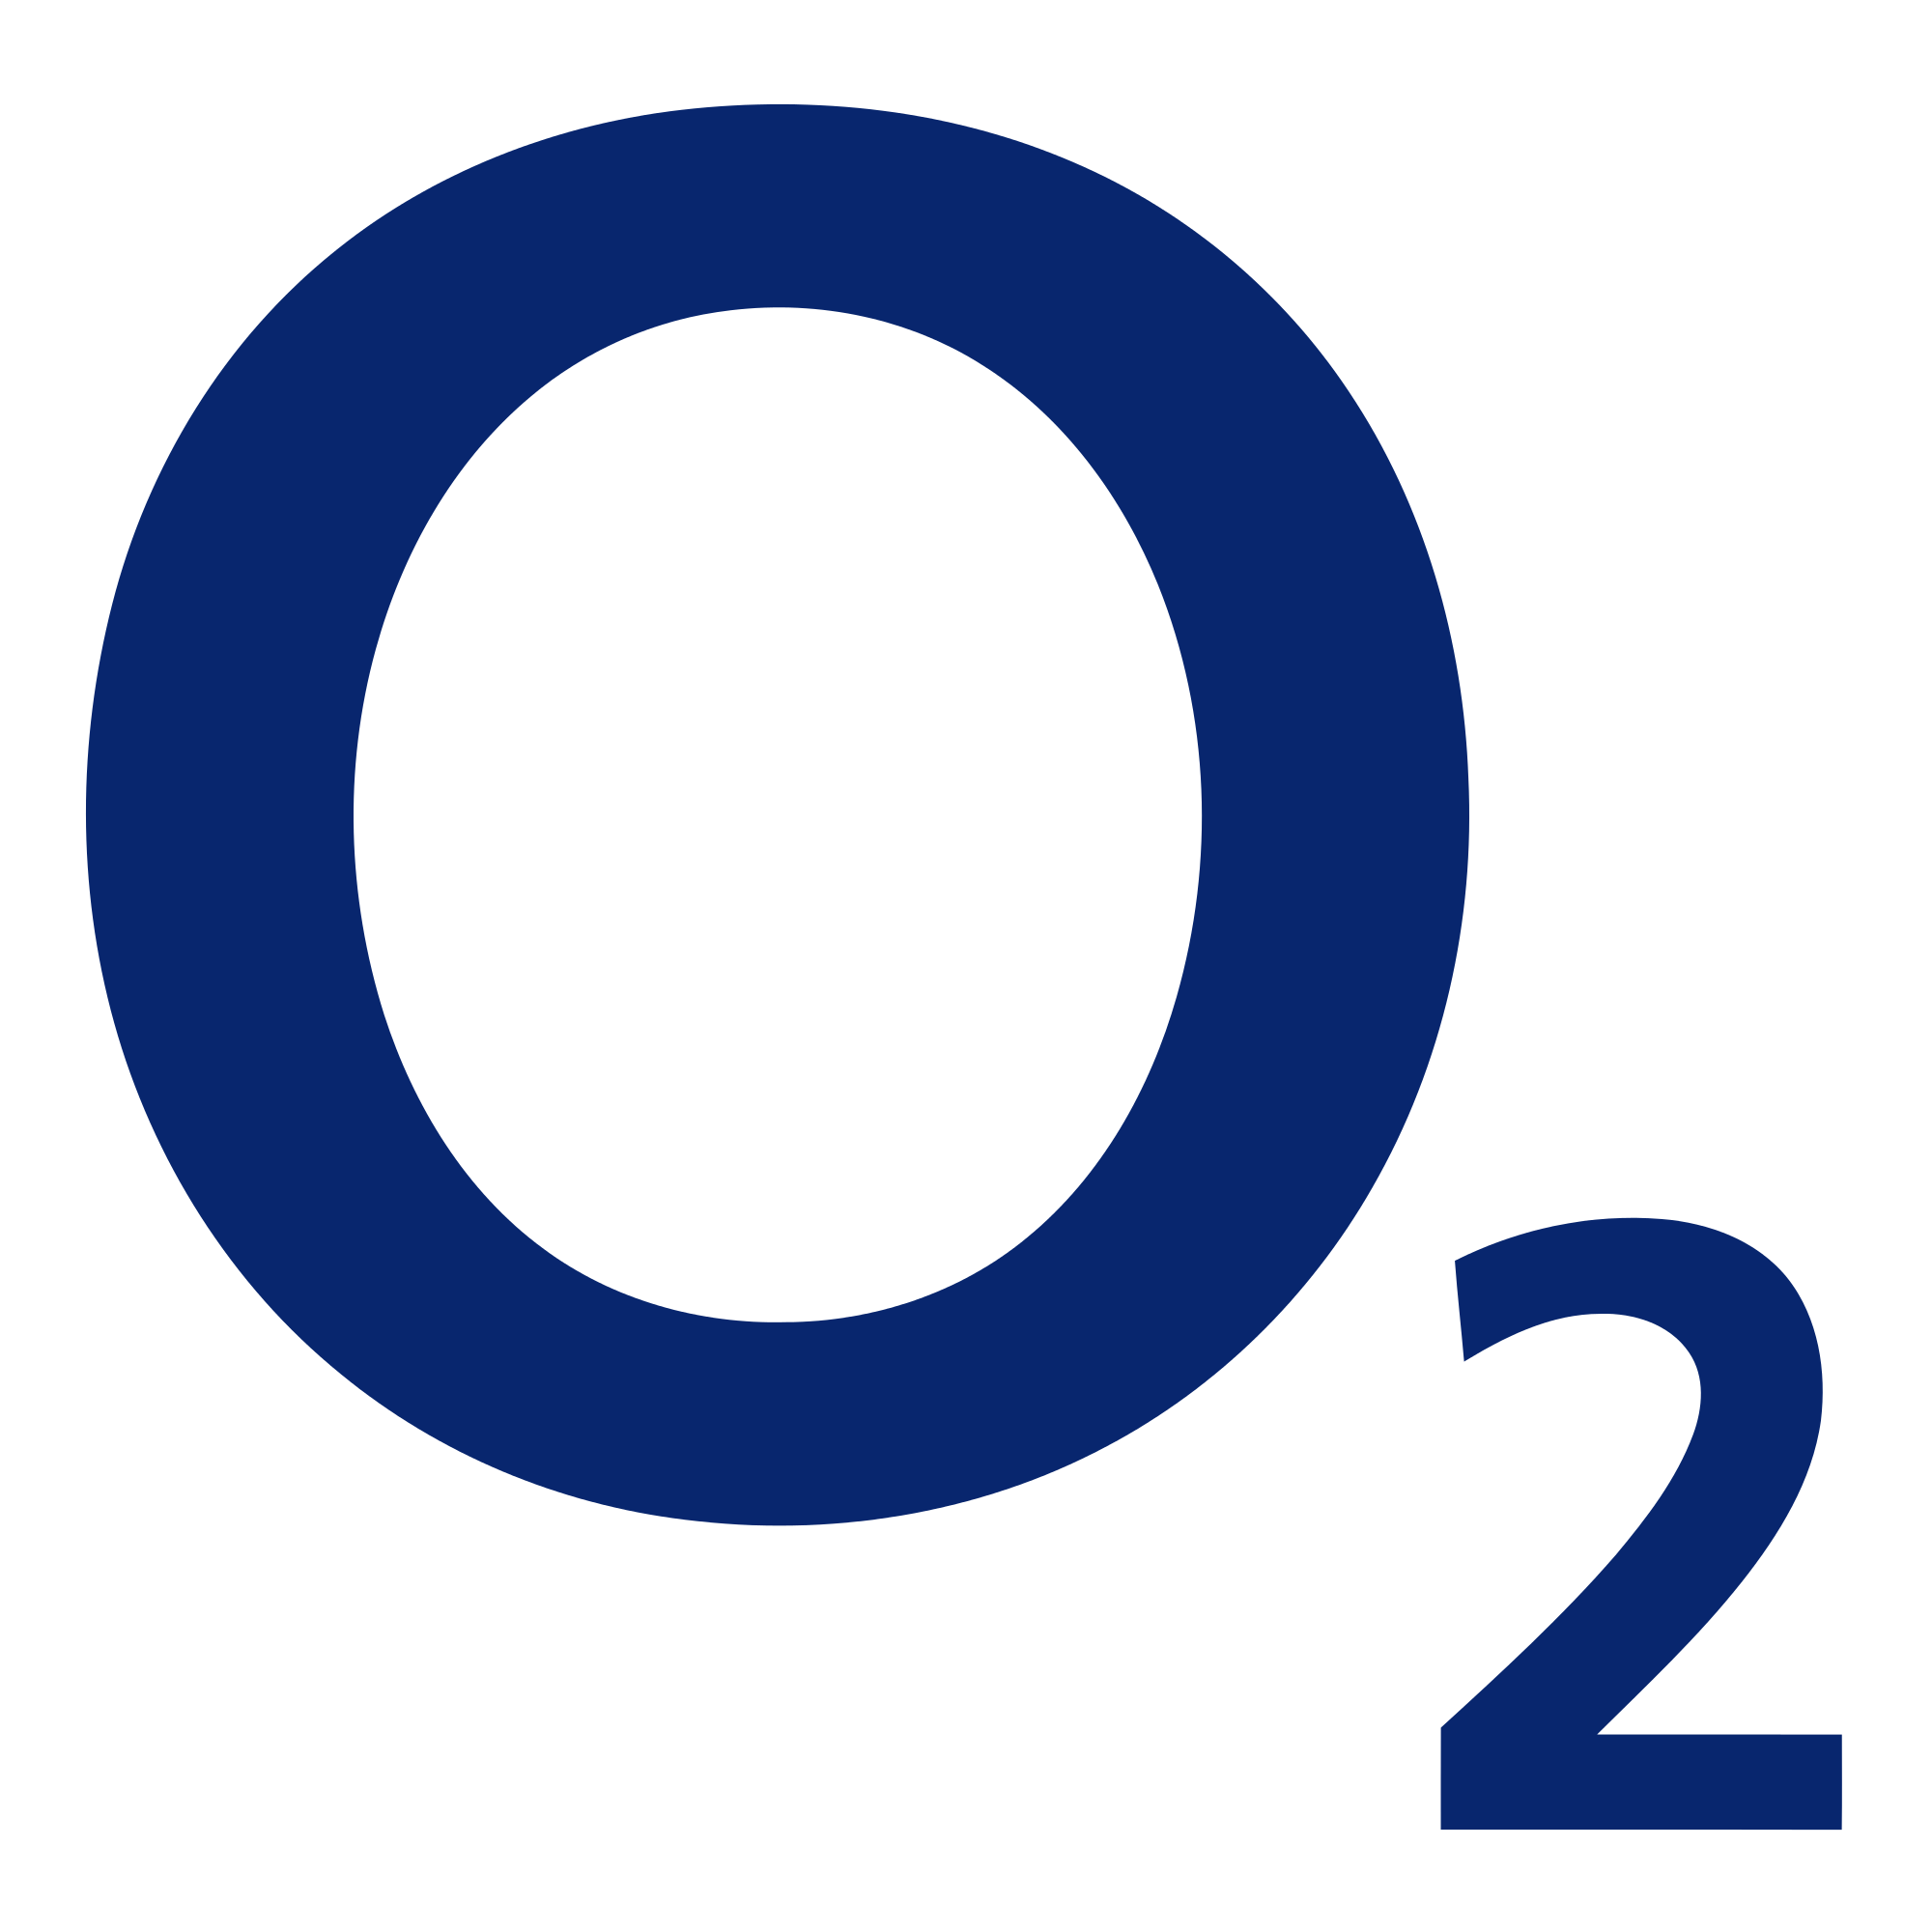 IoT Innovation Manager | Telefónica O2 UK